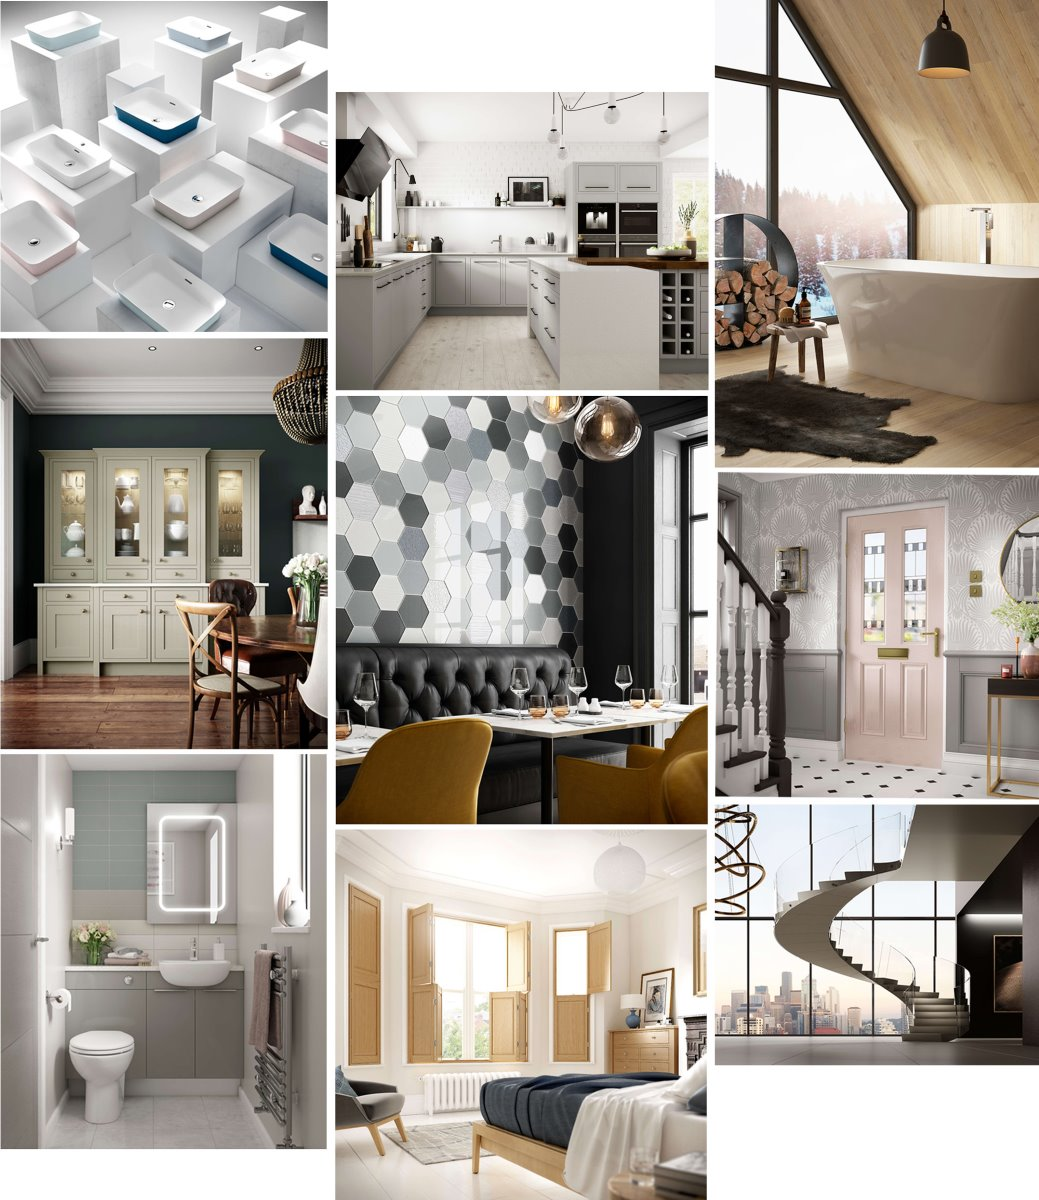 Set Visions CGI photography portfolio